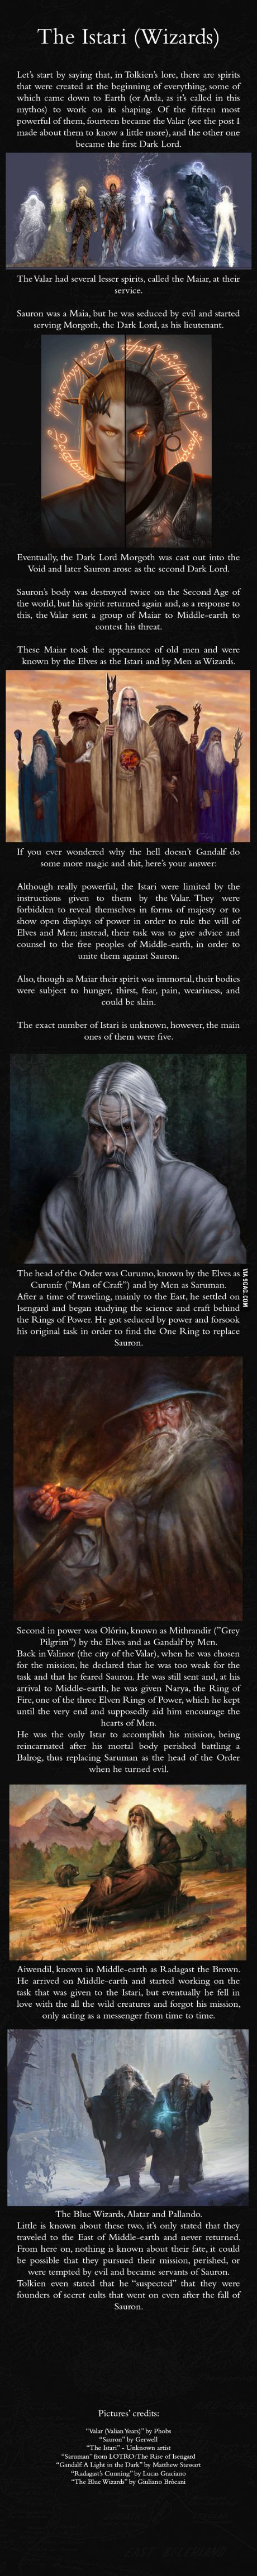 The Wizards of Middle-earth - J.R.R. Tolkien Mythology ::This is cool except for the language